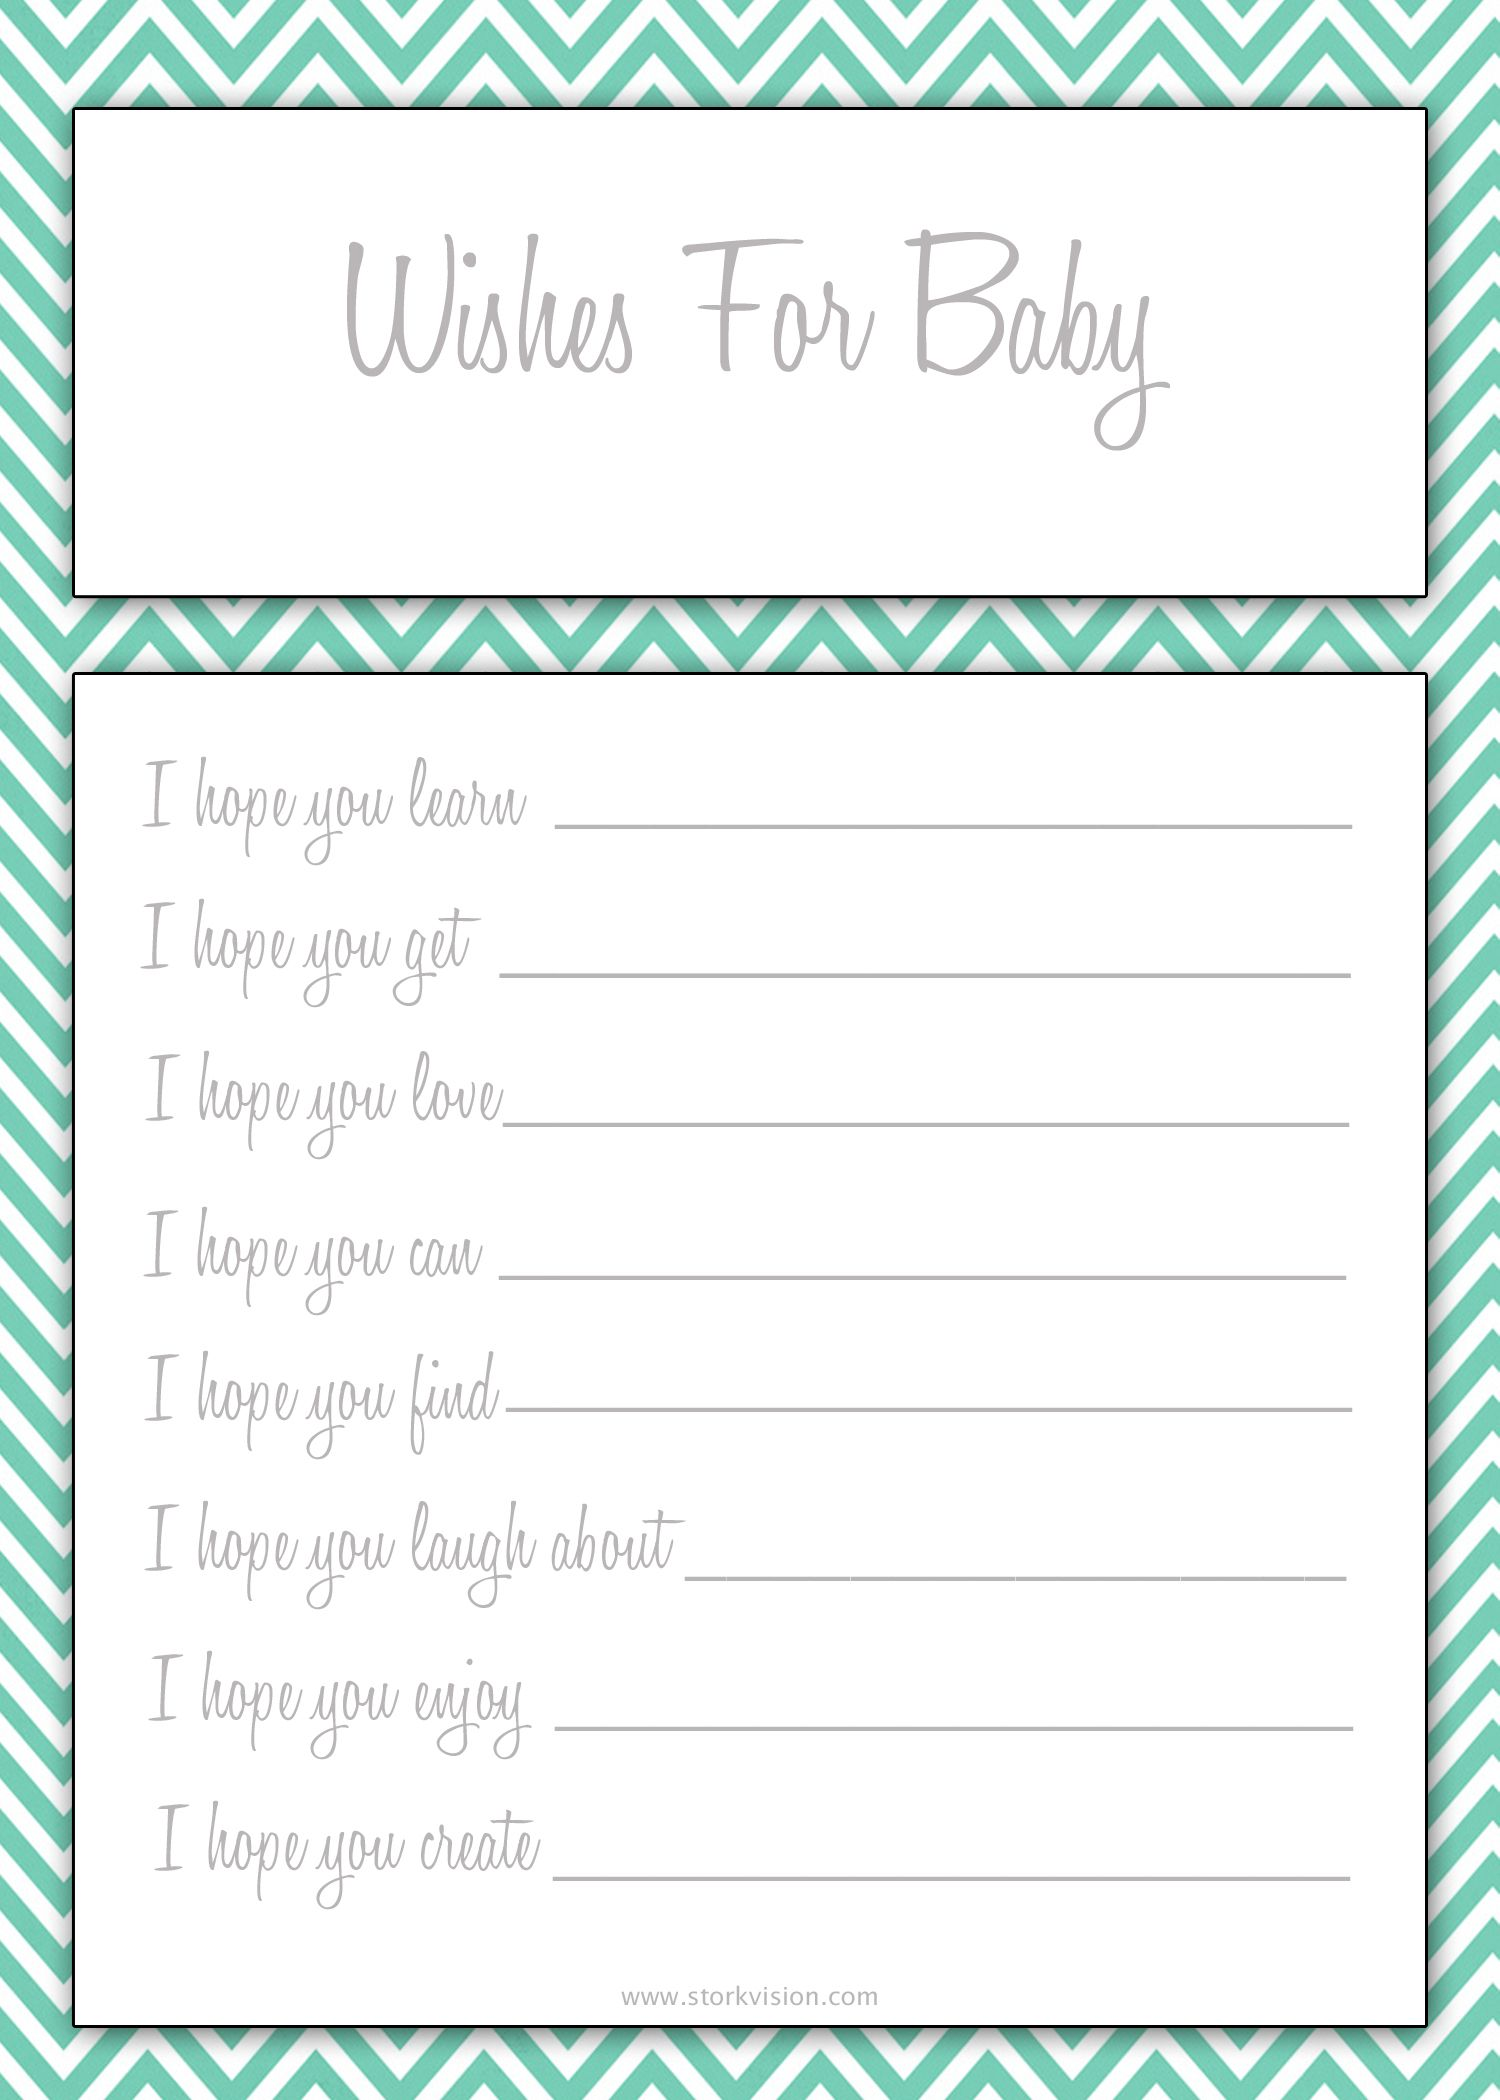 Wishes For Baby Printable For Baby Shower Keep Them For